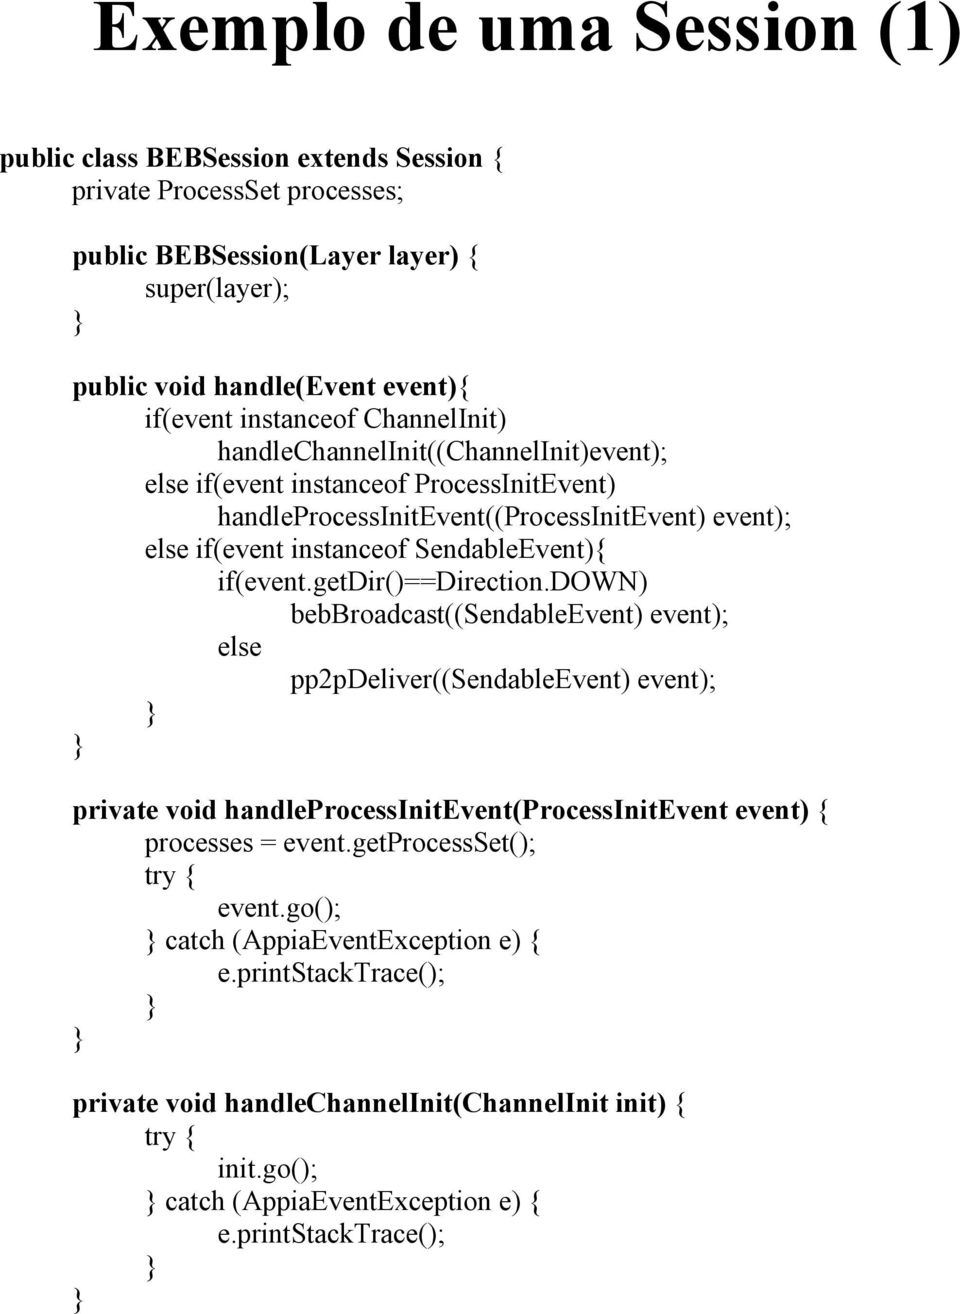 if(event.getdir()==direction.down) bebbroadcast((sendableevent) event); else pp2pdeliver((sendableevent) event); private void handleprocessinitevent(processinitevent event) { processes = event.